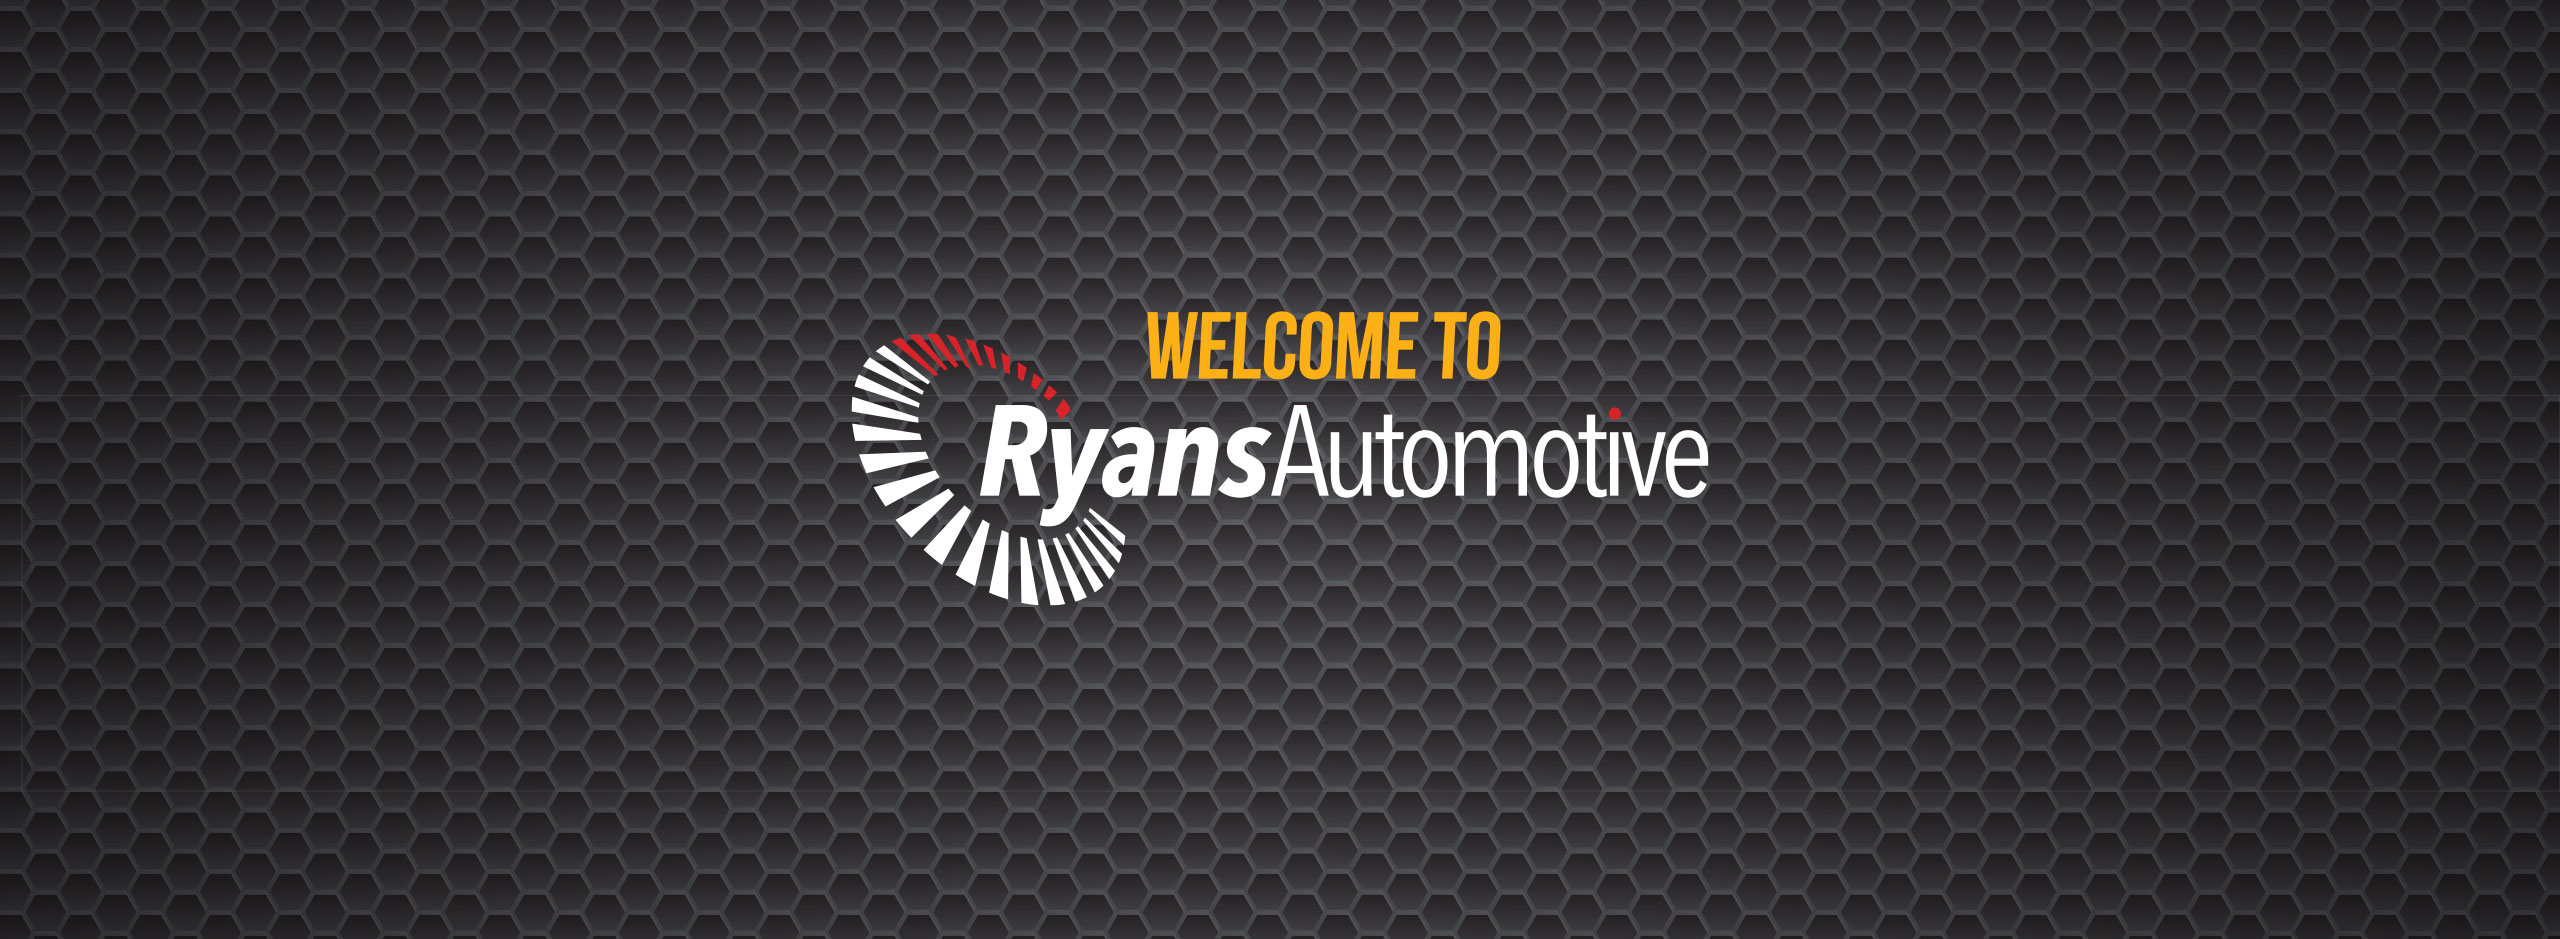 Welcome to Ryans Automotive